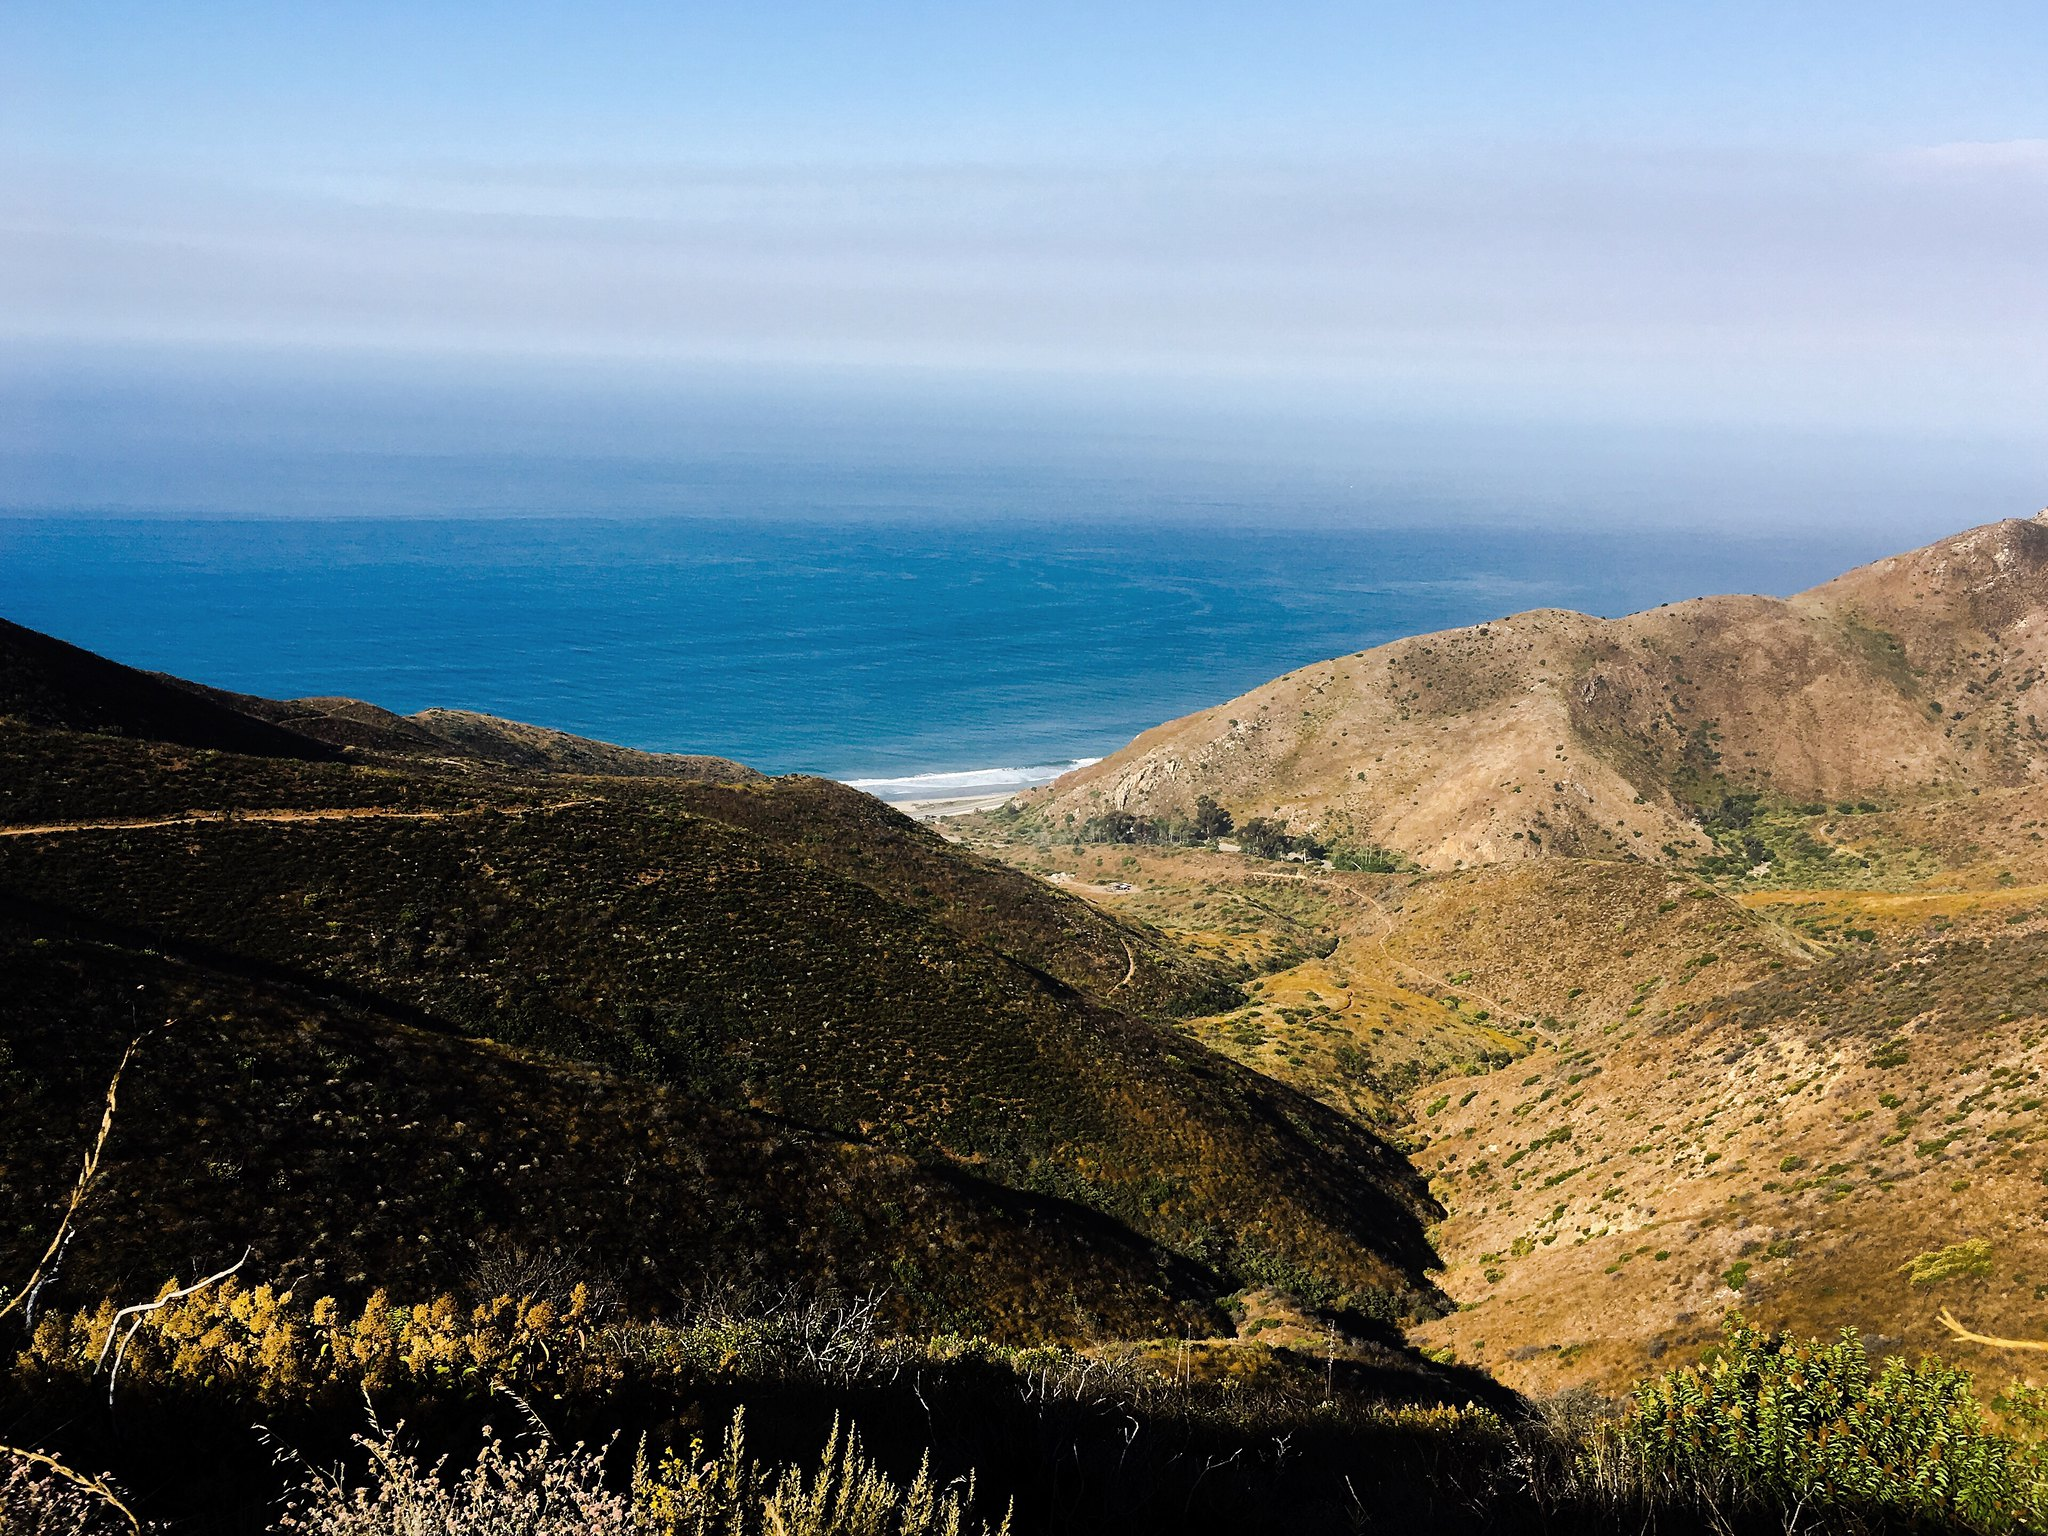 point mugu latin singles The mtv malibu beach house was the setting of a number of summer programming productions by the mtv television network during the 1990s  from point mugu east to .